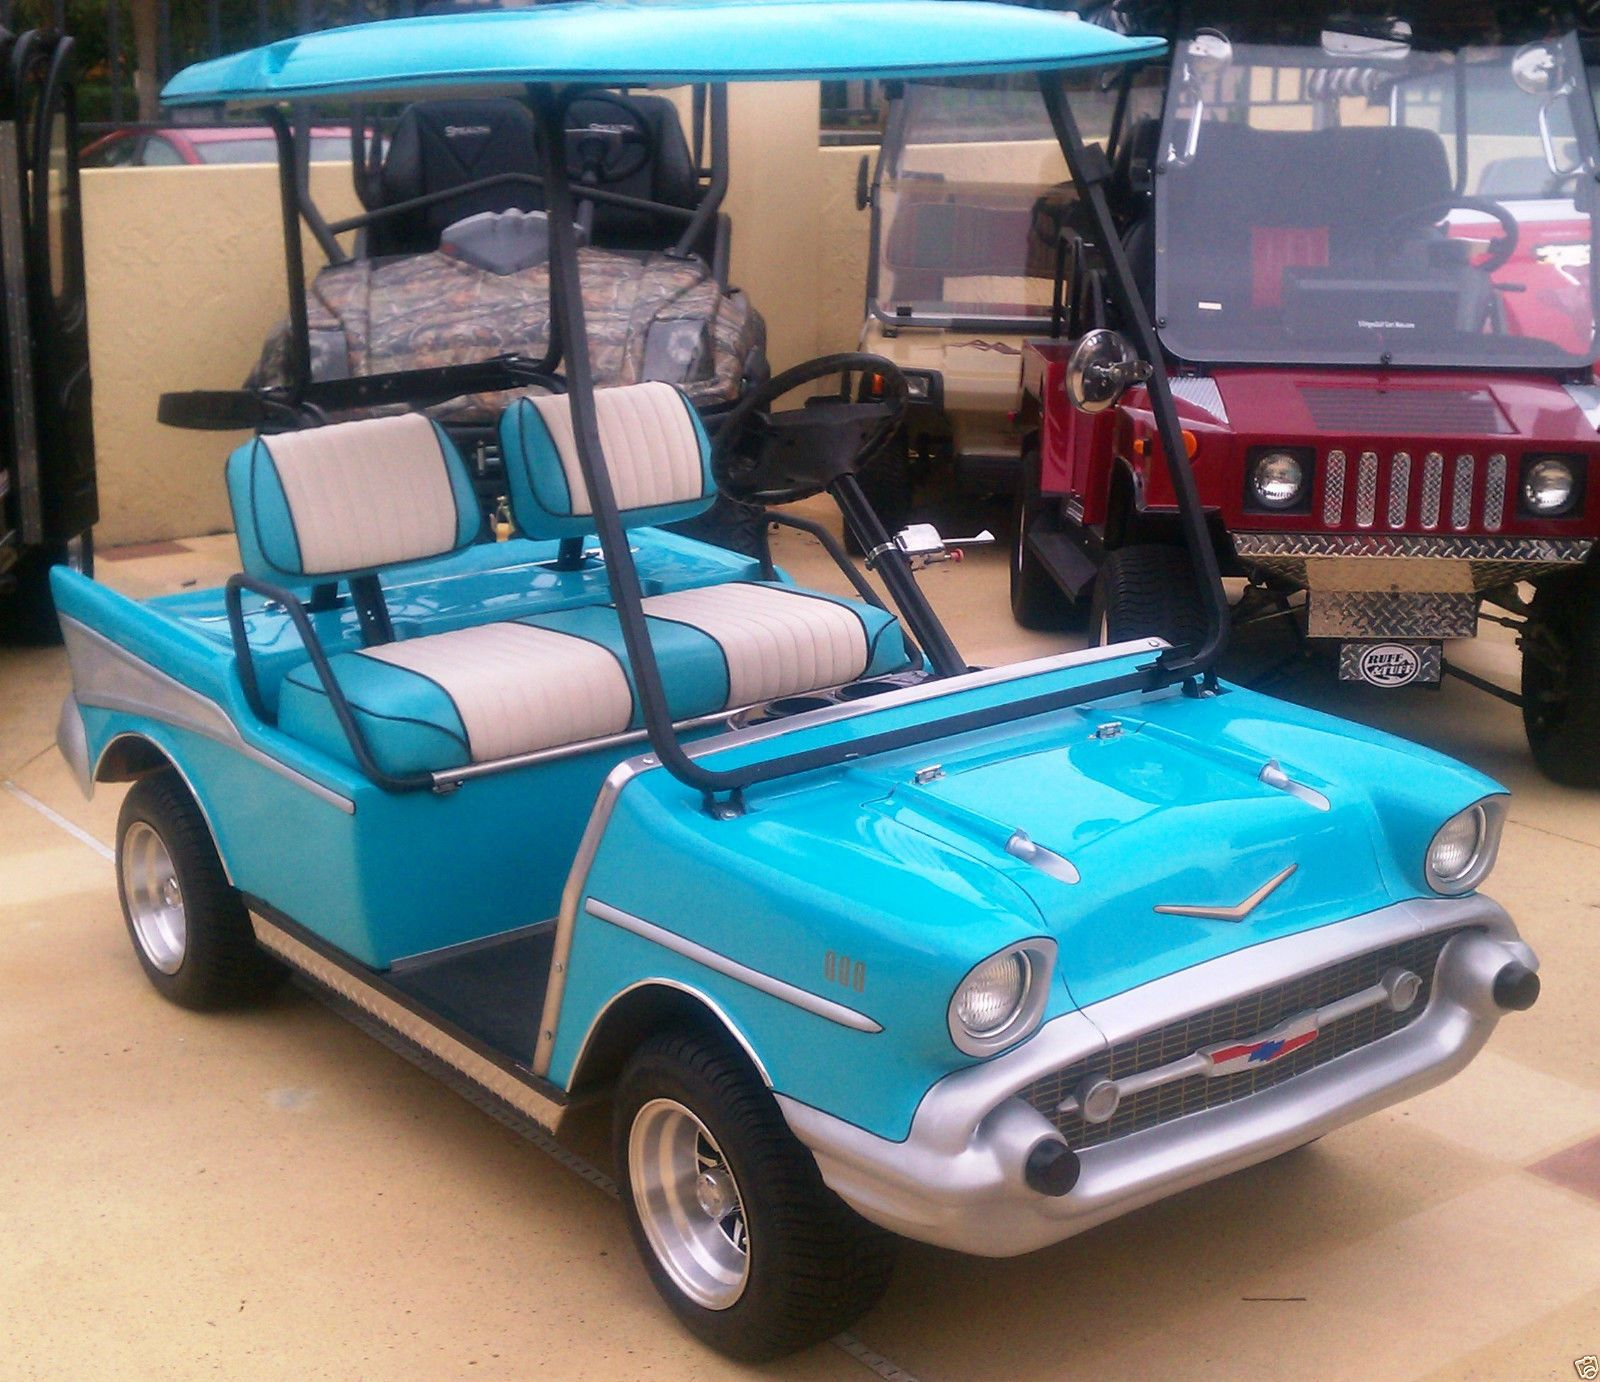 57' Chevy Golf Cart Body Fits Club Car Ds Any Year